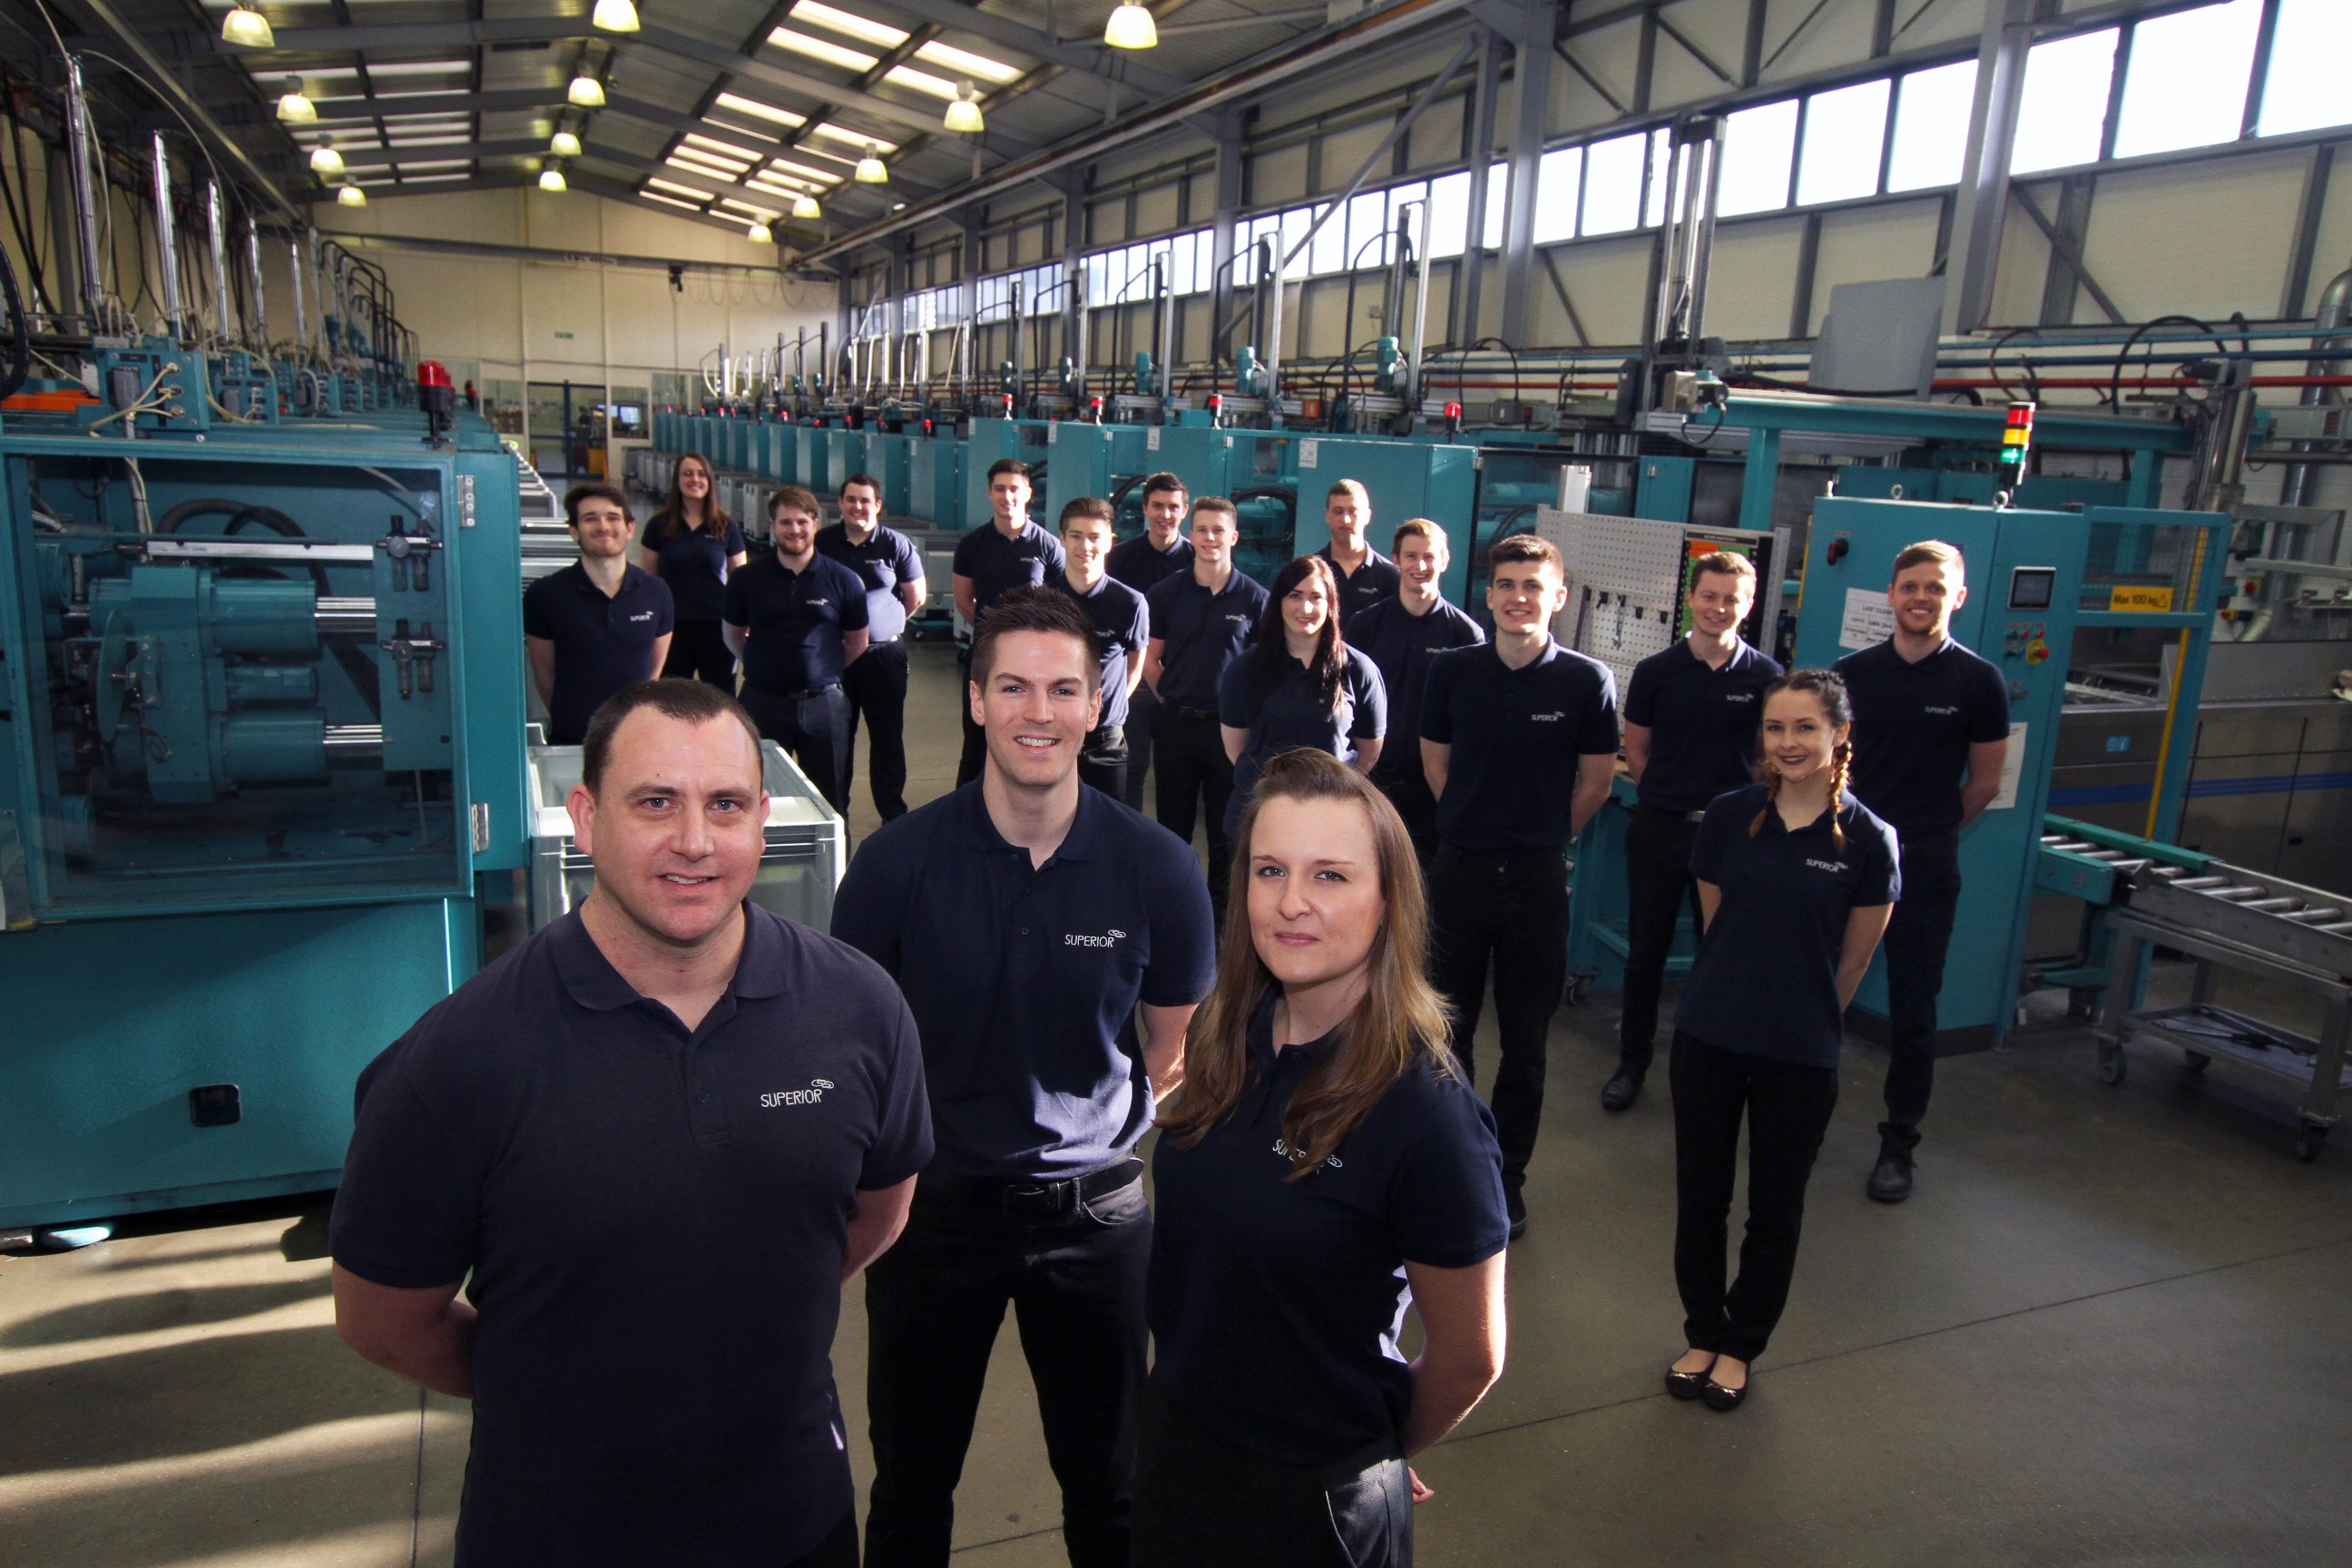 From left to right, Liam Stratten, training manager, Ben Clarke, quality manager and Katie Bodman, head of training academy with Superior apprentices.